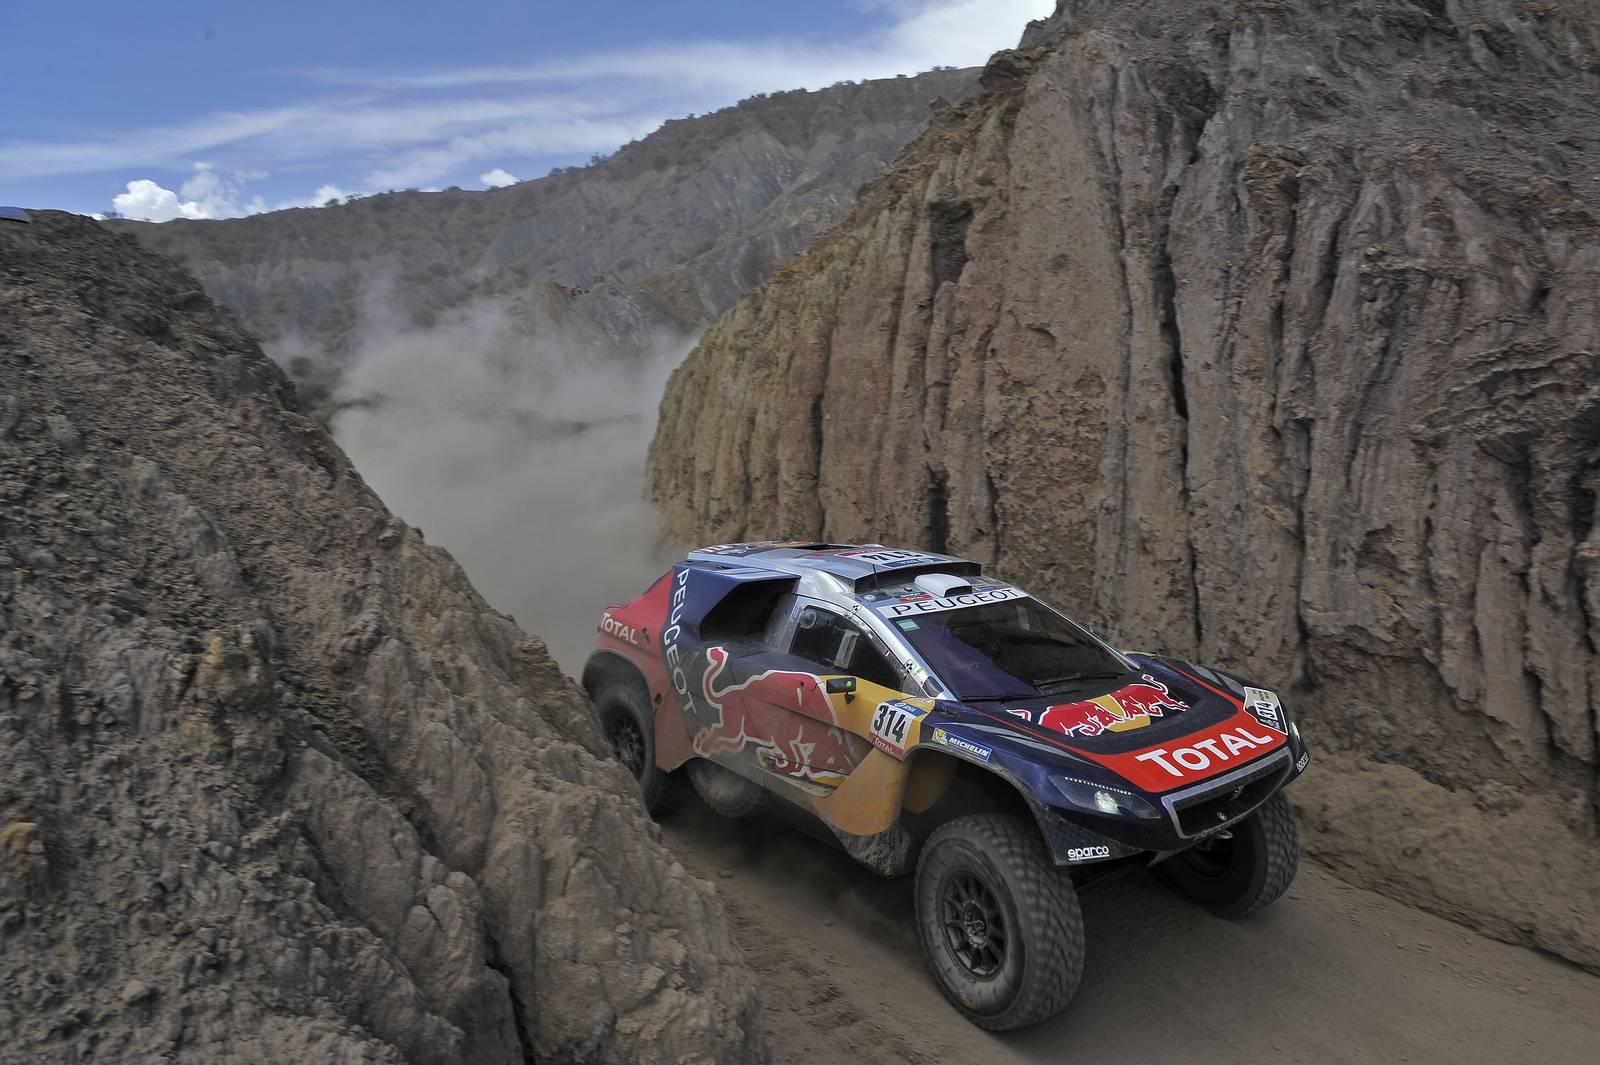 dakar rally 2016 stage 6 5